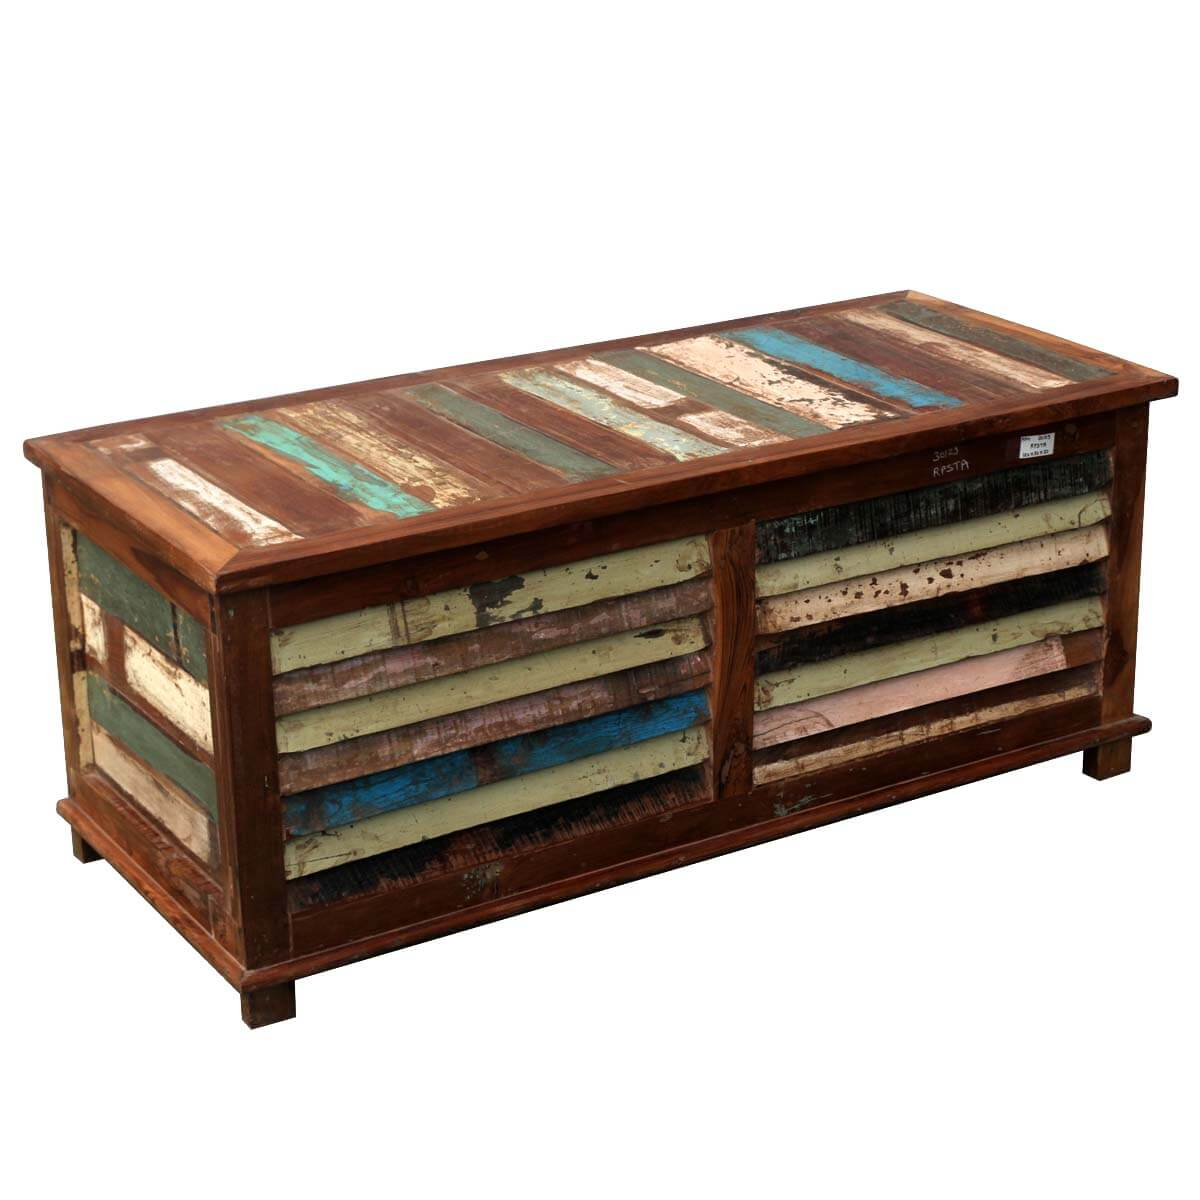 Rustic reclaimed wood multi color coffee table storage trunk chest Trunks coffee tables